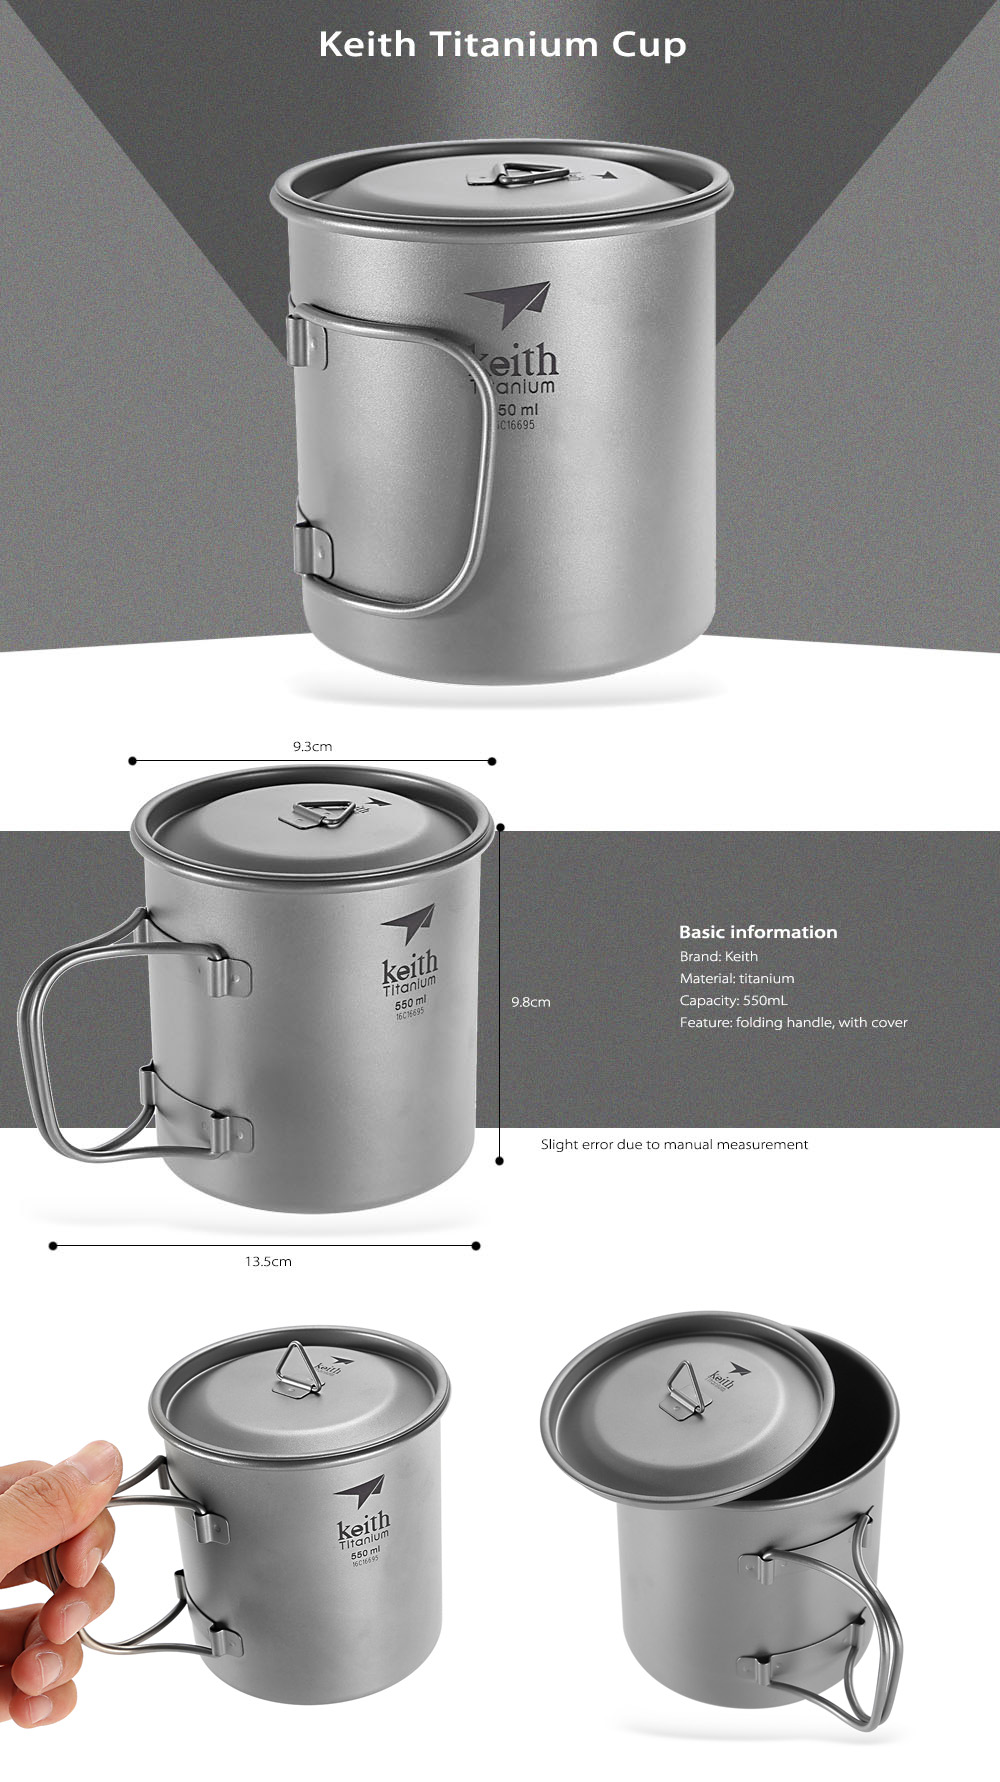 Keith Ti3206 Portable 550mL Titanium Cup with Folding Handle / Cover